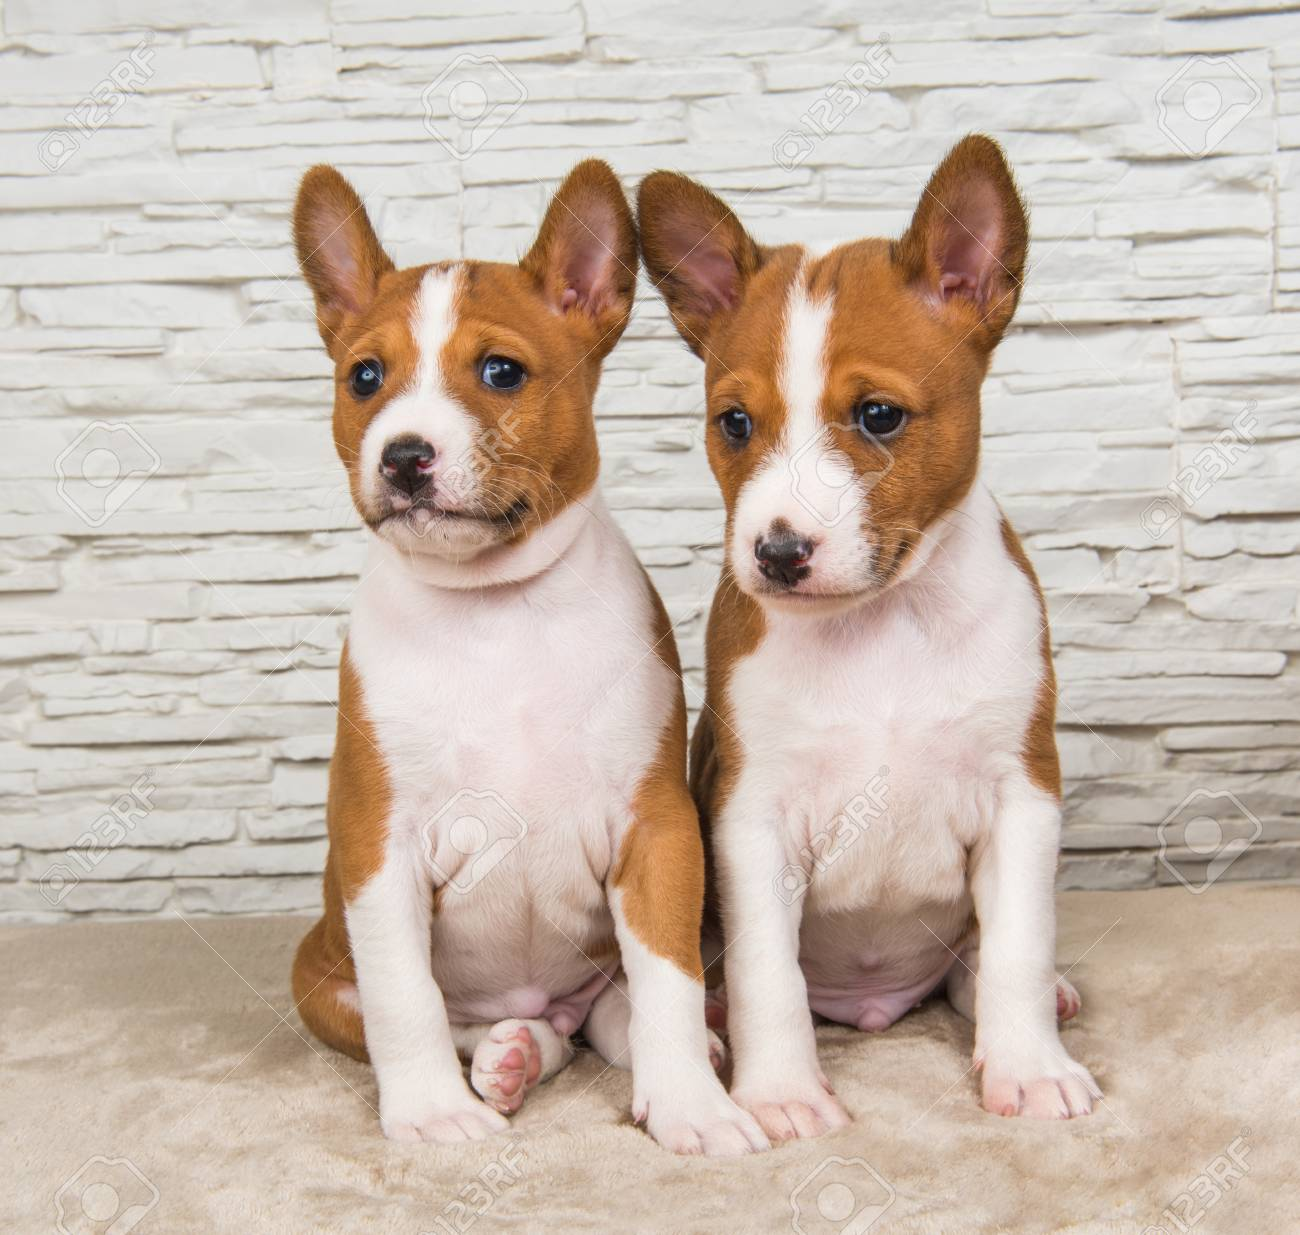 Two Funny Small Babies Basenji Puppies Dogs On White Wall